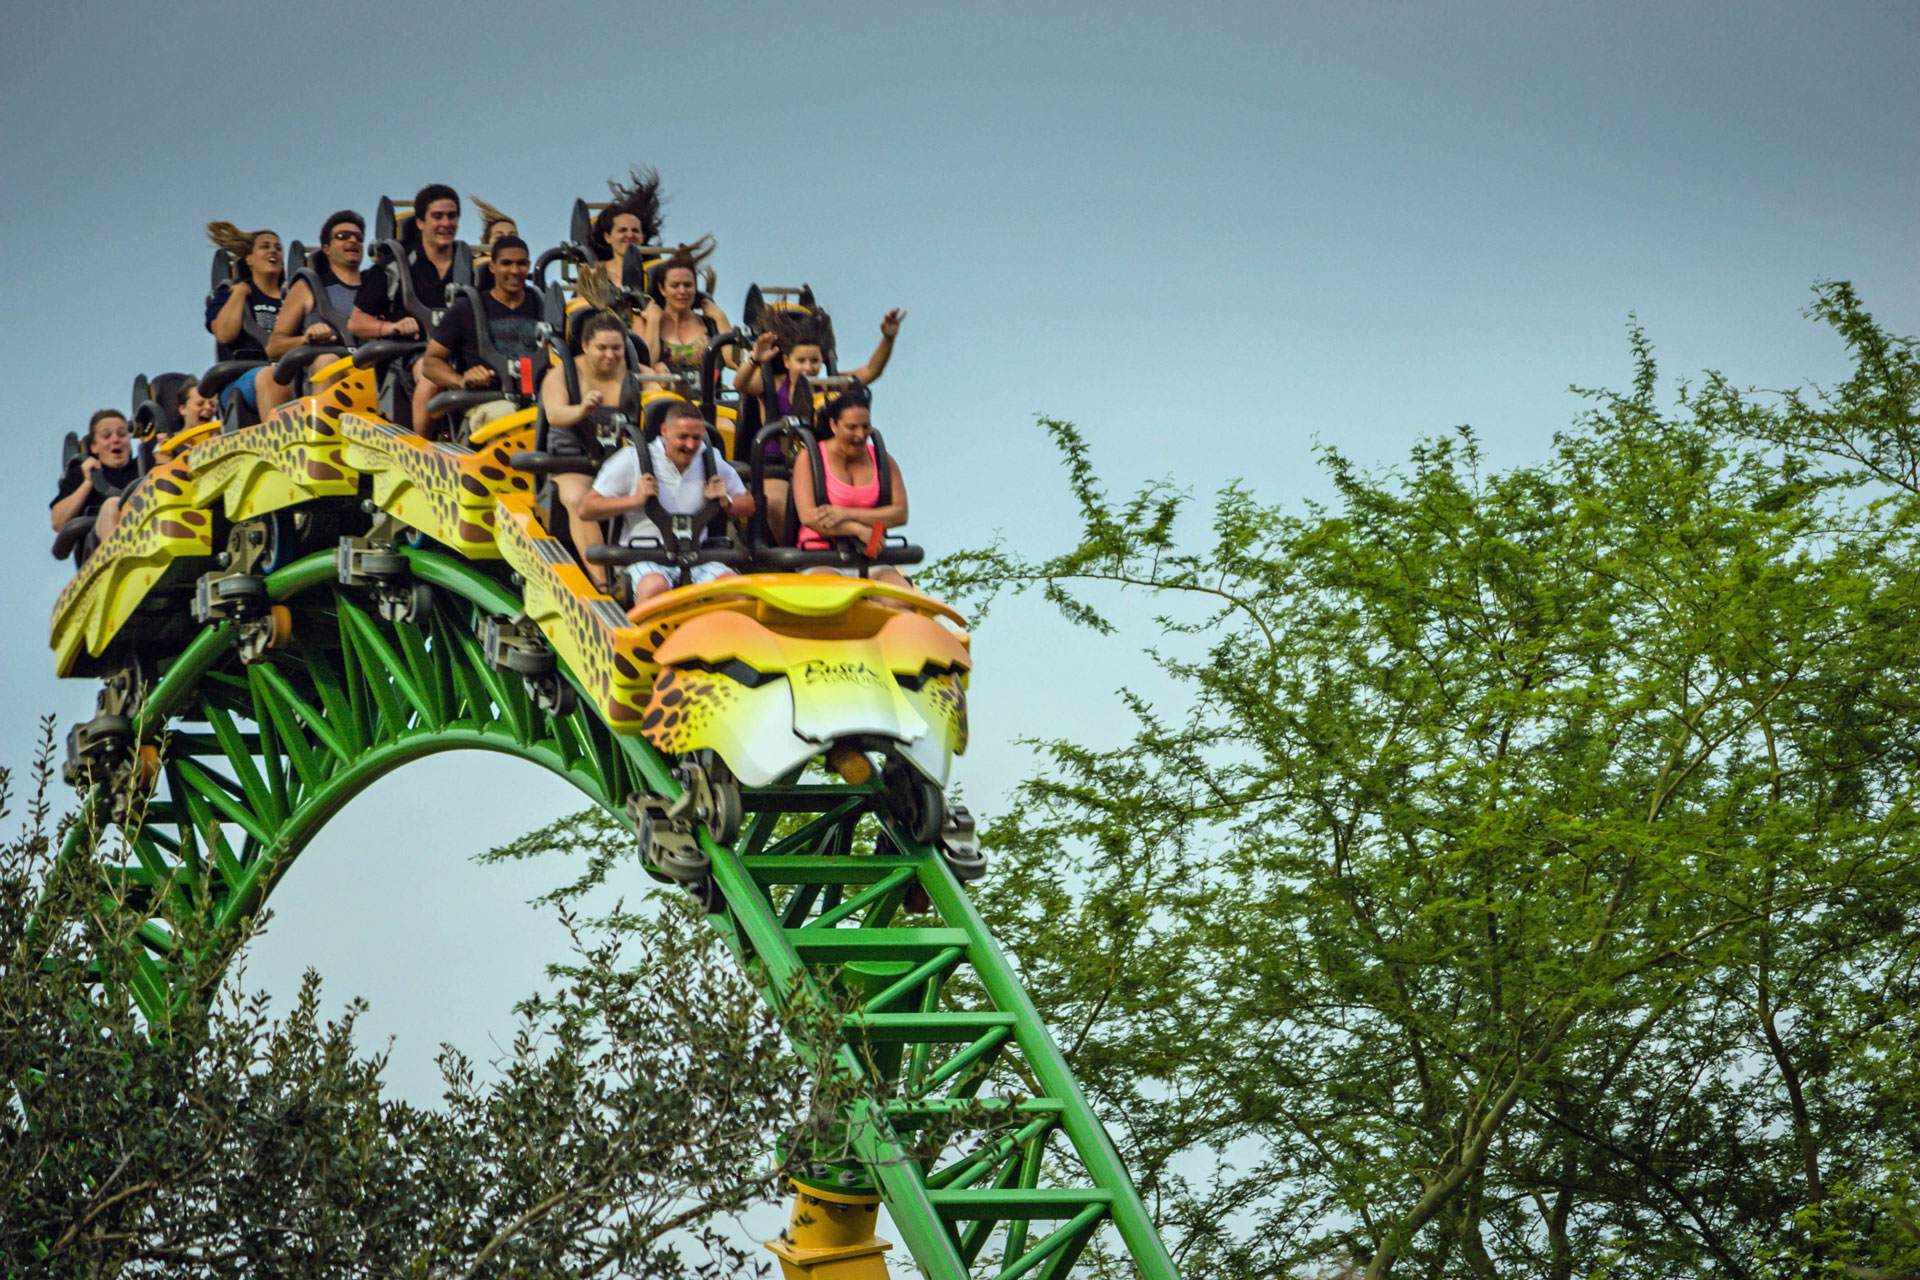 Lsm Launched Coaster Videos Facts Coasterforce